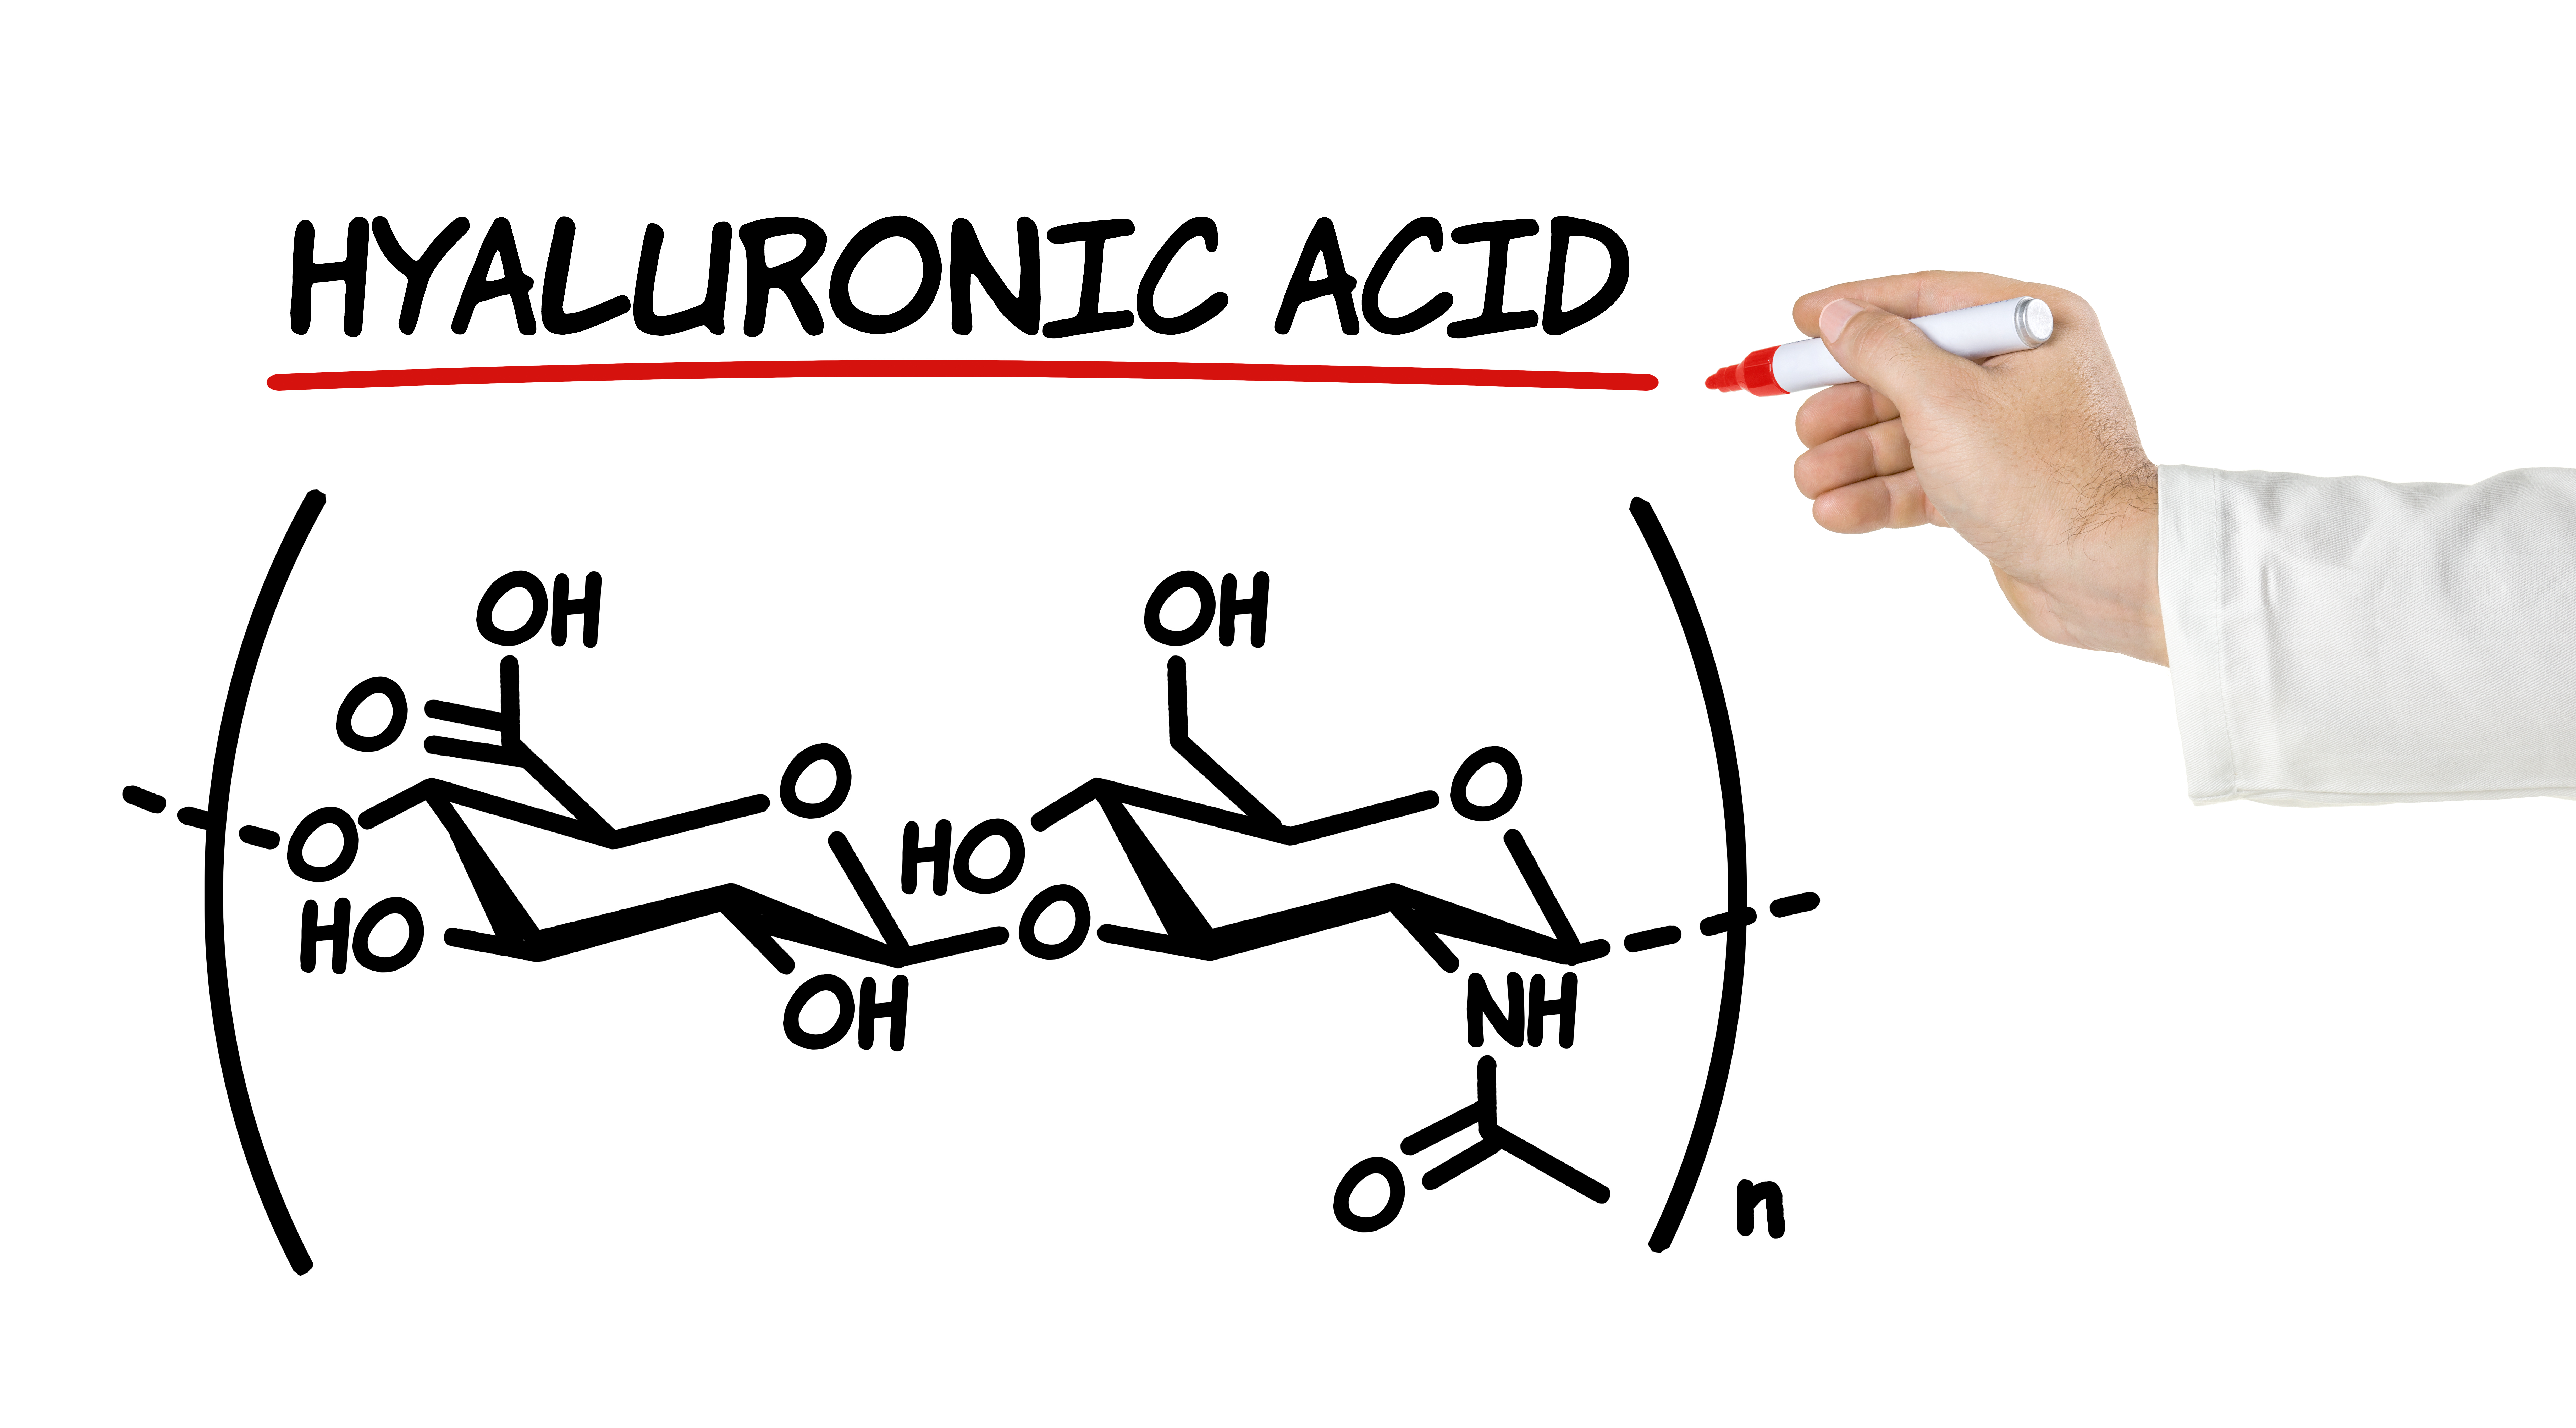 Hyaluronic structure